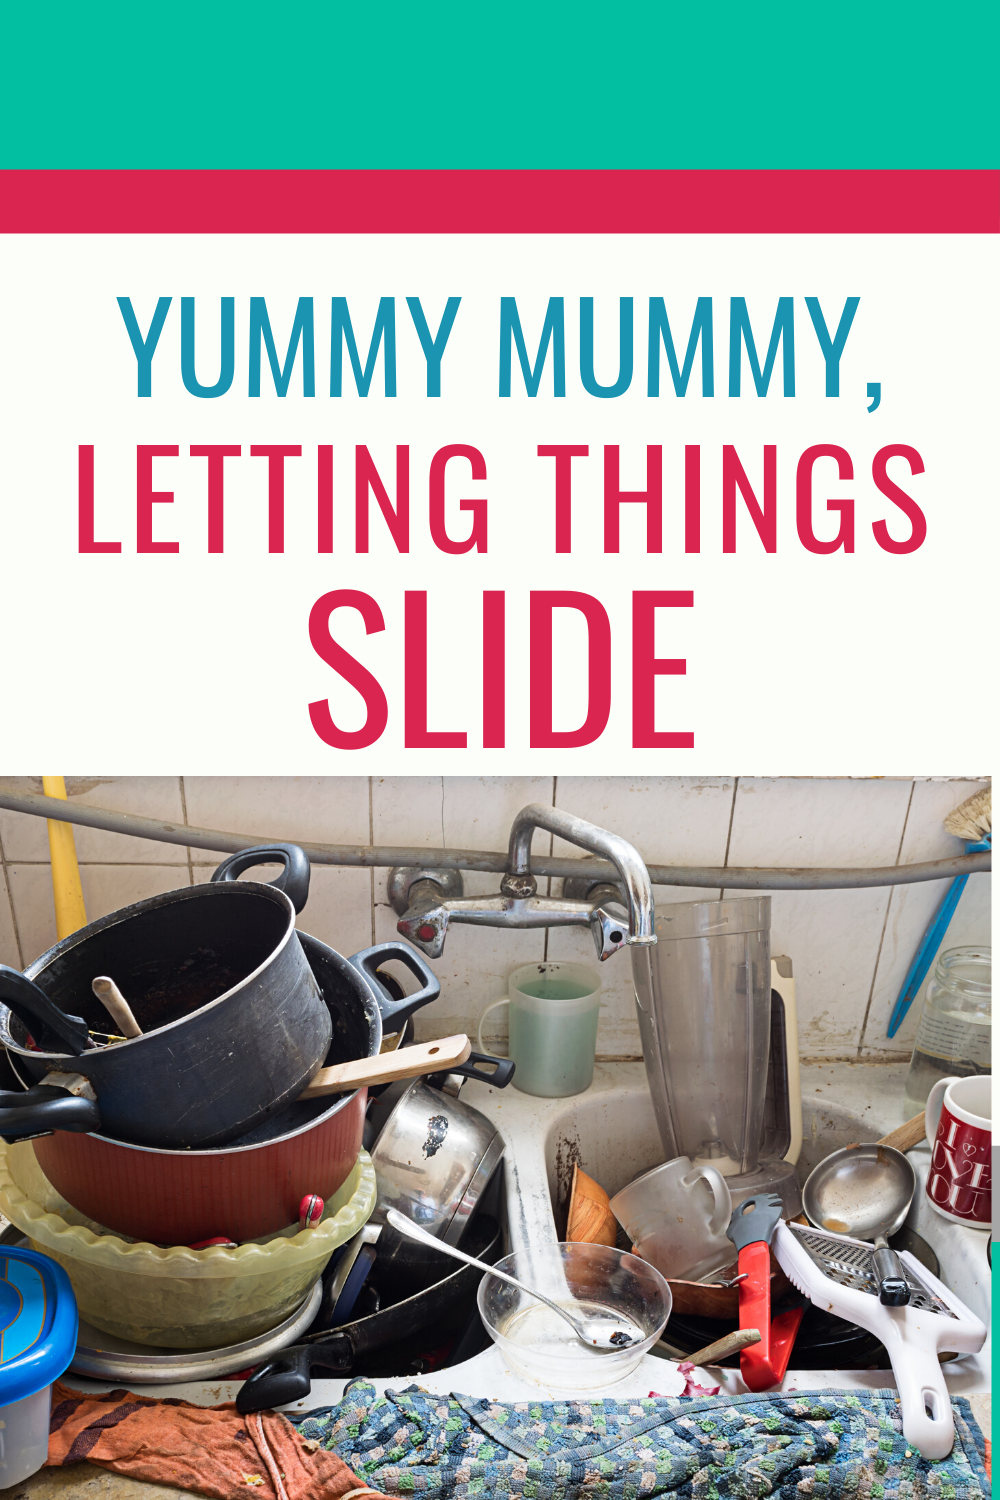 Even stay-at-home mamas can find it hard to keep on top of things! And that's OK - the kids are our priority. The housework can wait.